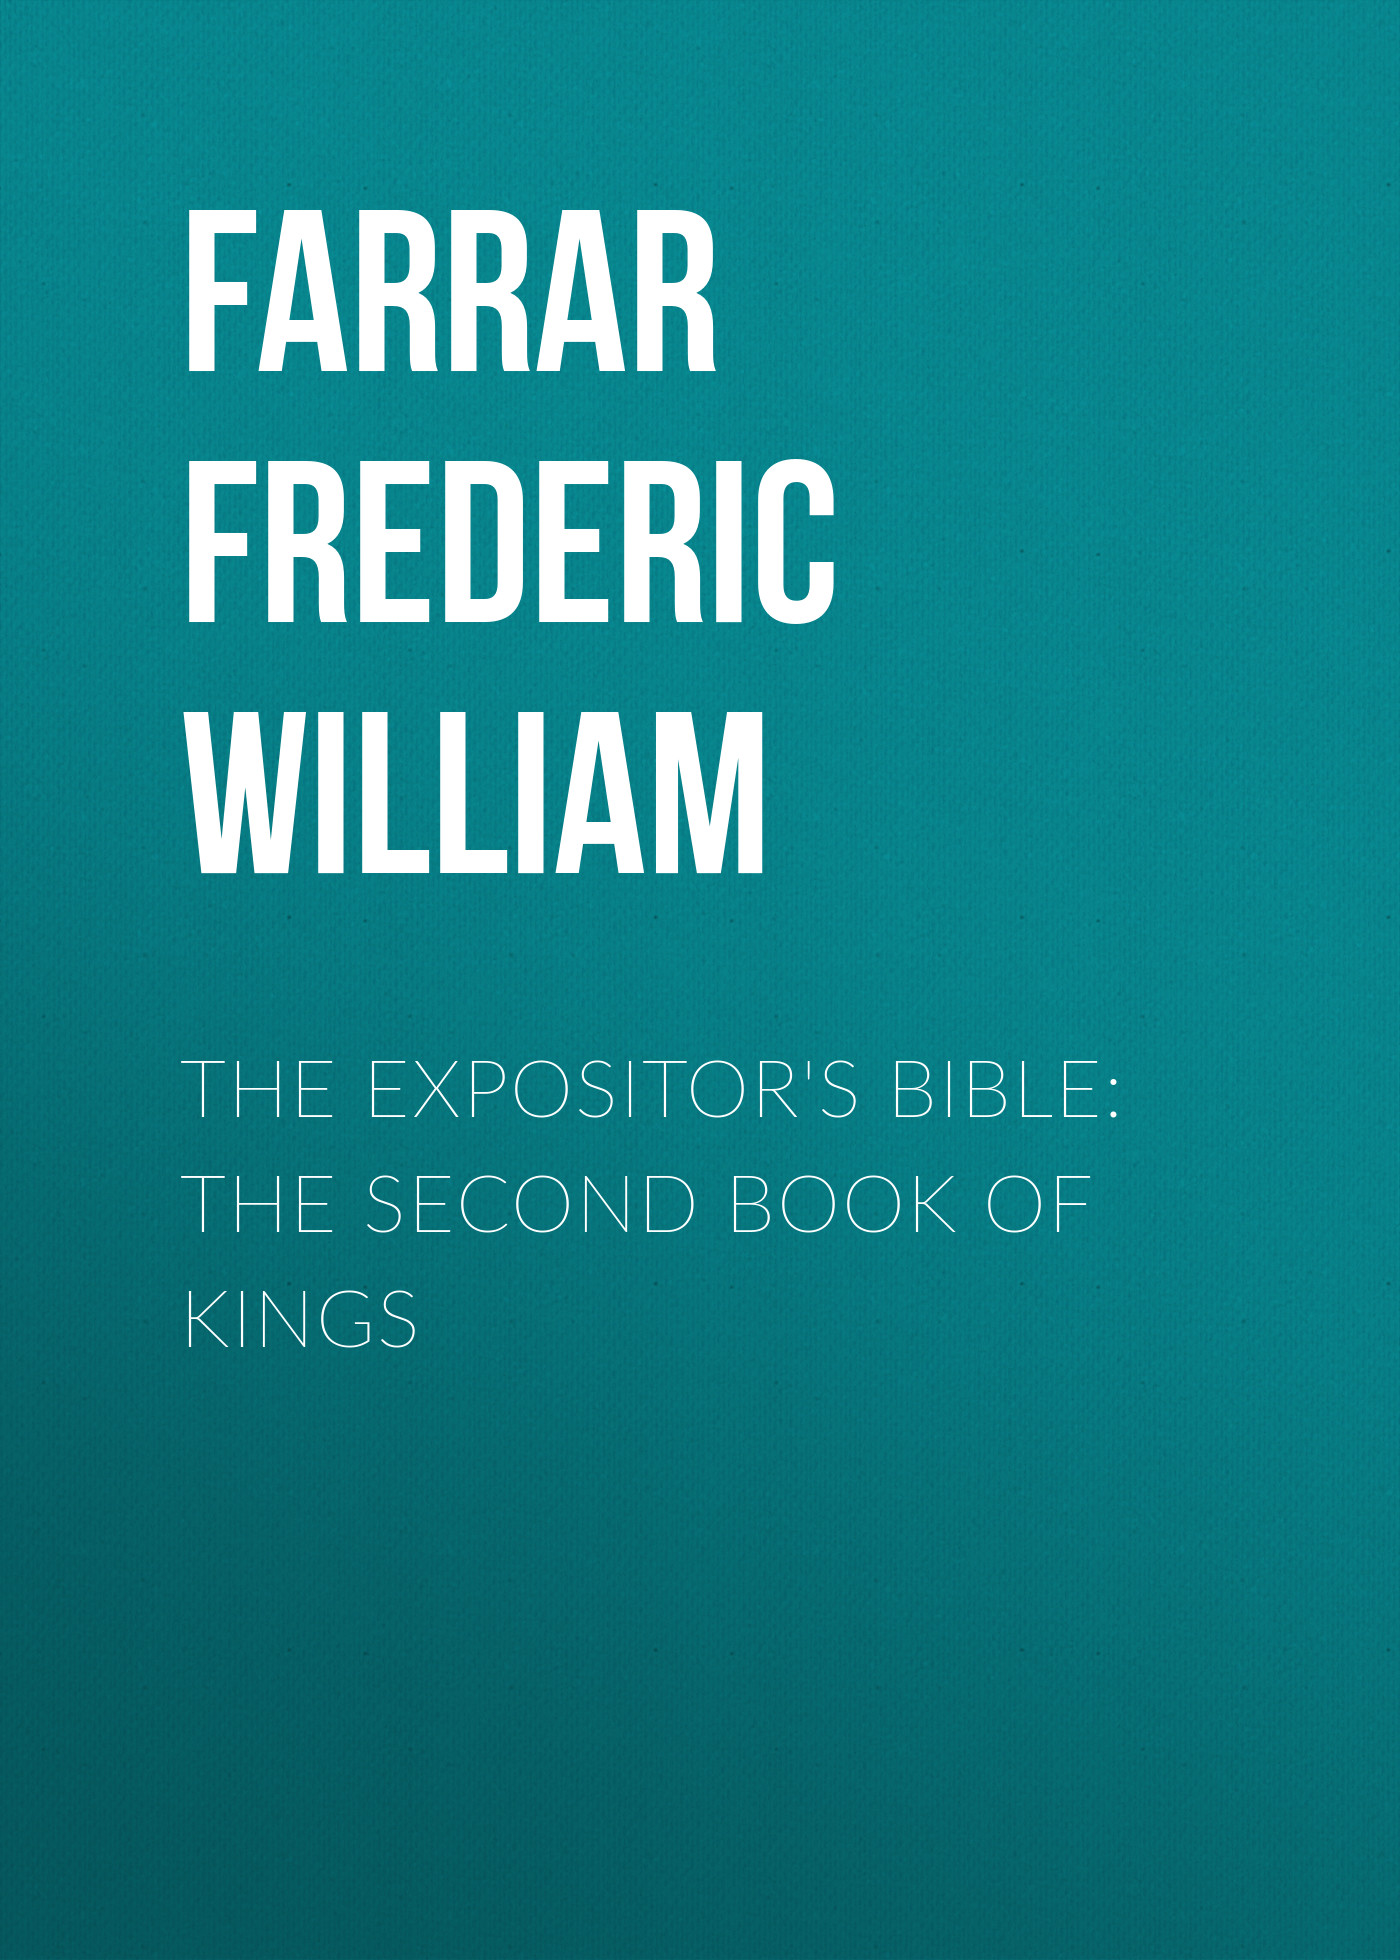 Farrar Frederic William The Expositor's Bible: The Second Book of Kings william garden blaikie the book of joshua v 6